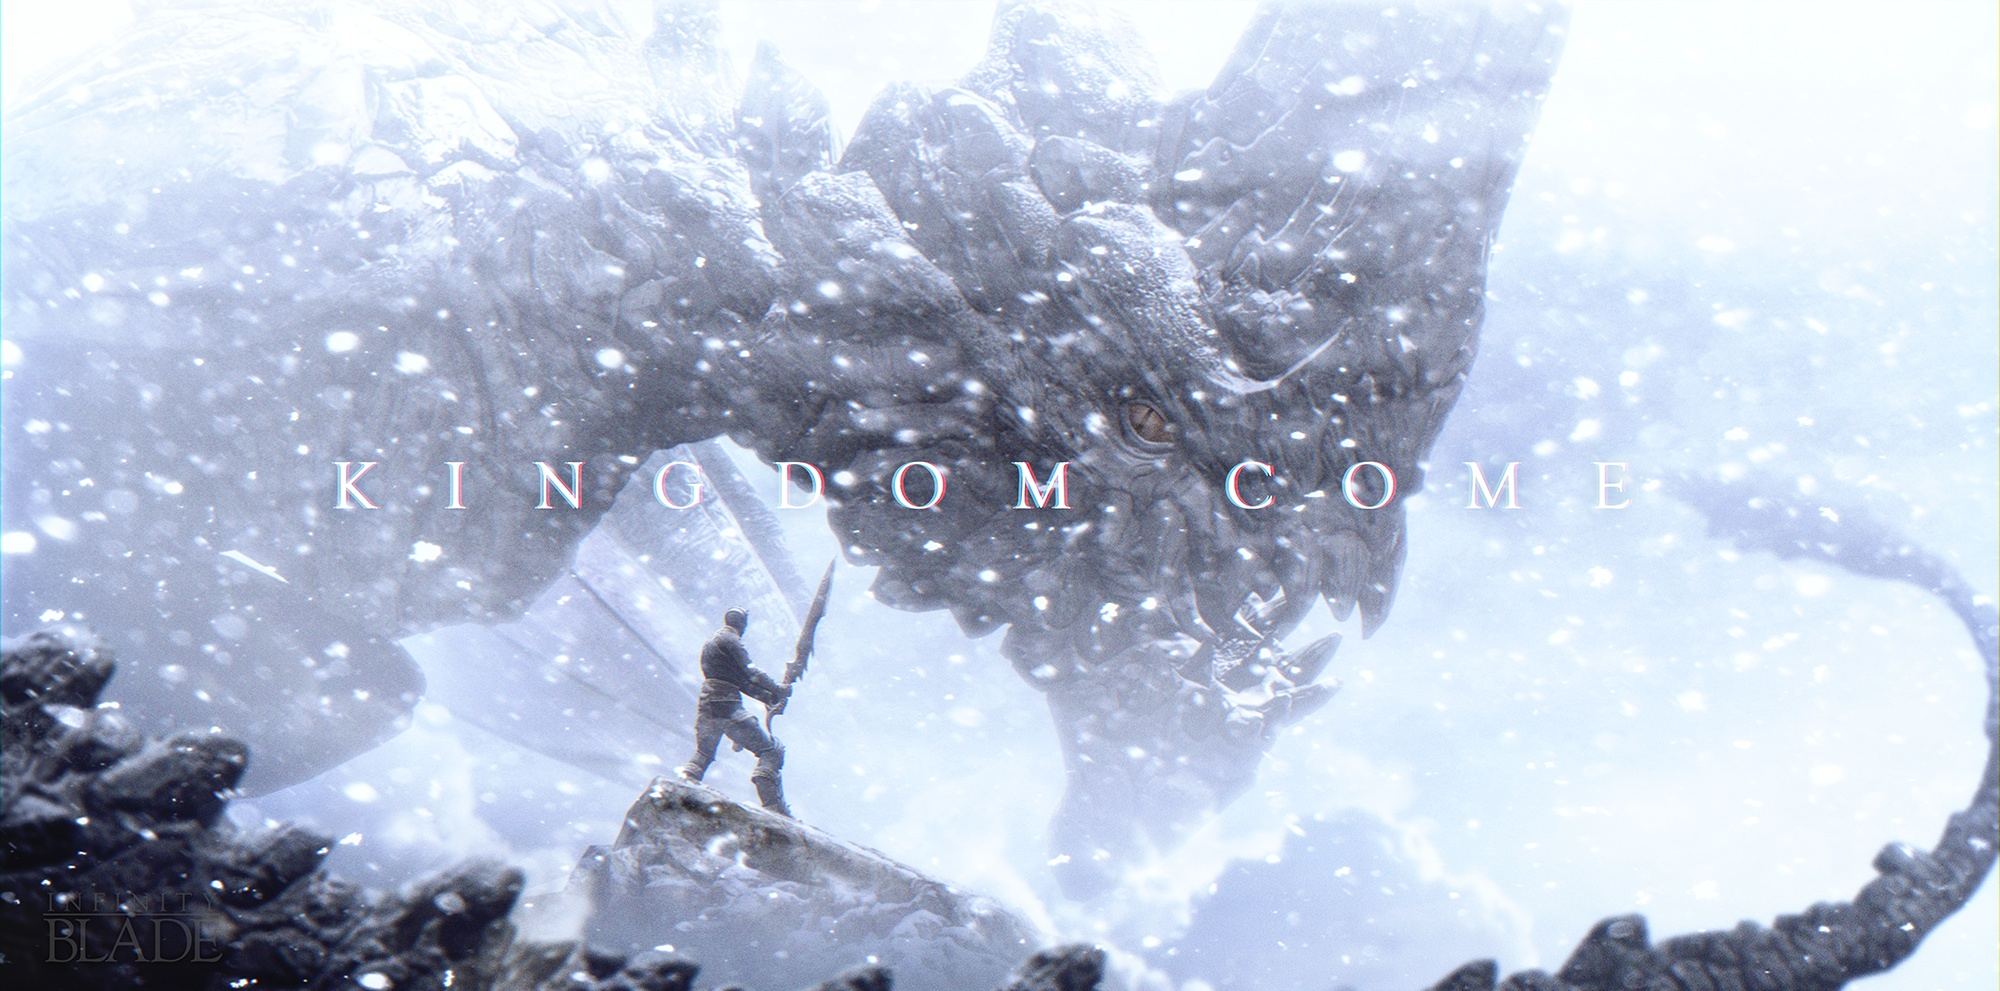 Infinity Blade III 'Kingdom Come' update is out with new maps ... on prototype 3 maps, ninja gaiden 3 maps, dragon blade dx of maps, mass effect 3 maps, call of duty 3 maps, dead space 3 maps, s dragon blade tower maps, gears of war 3 maps, dead rising 3 maps, resident evil 3 maps, grand theft auto 3 maps,